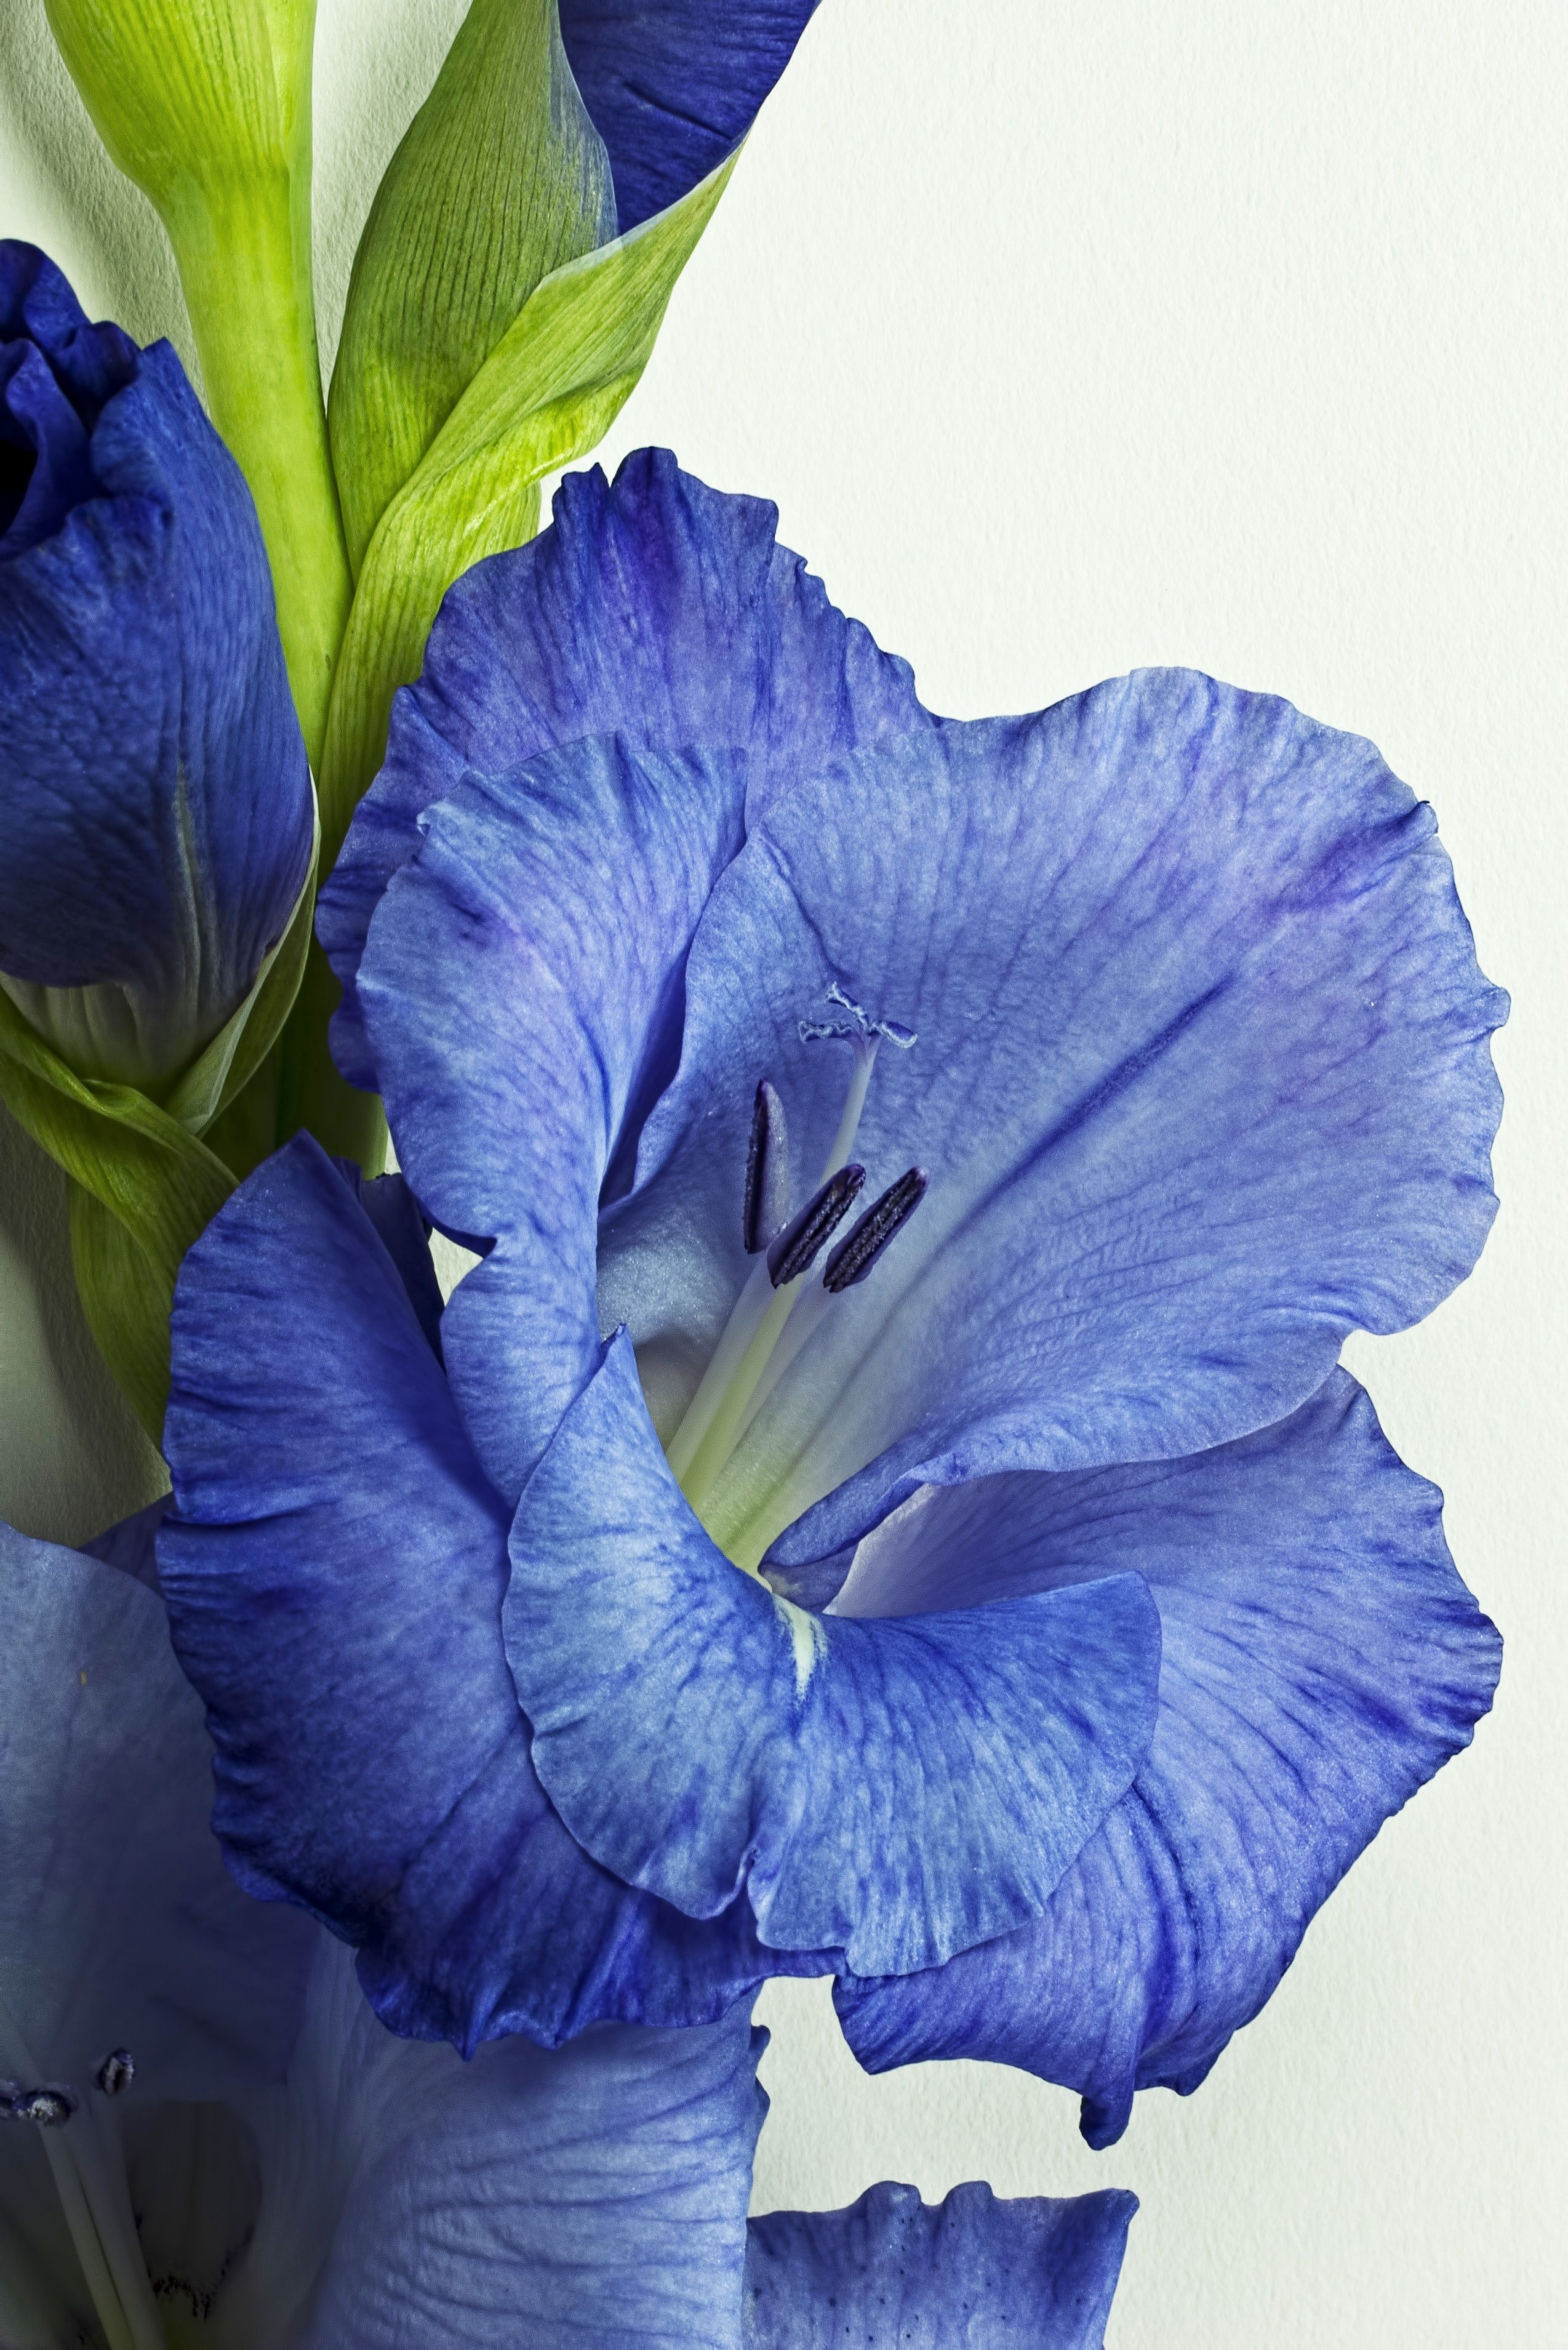 Nature Plant Flower Purple Petal Spring Blue Flora Flowers Close Up Human Body Iris Eye Organ Purple Flower Gladiolus Gladiolus Gladiolus Flower Flora Flowers